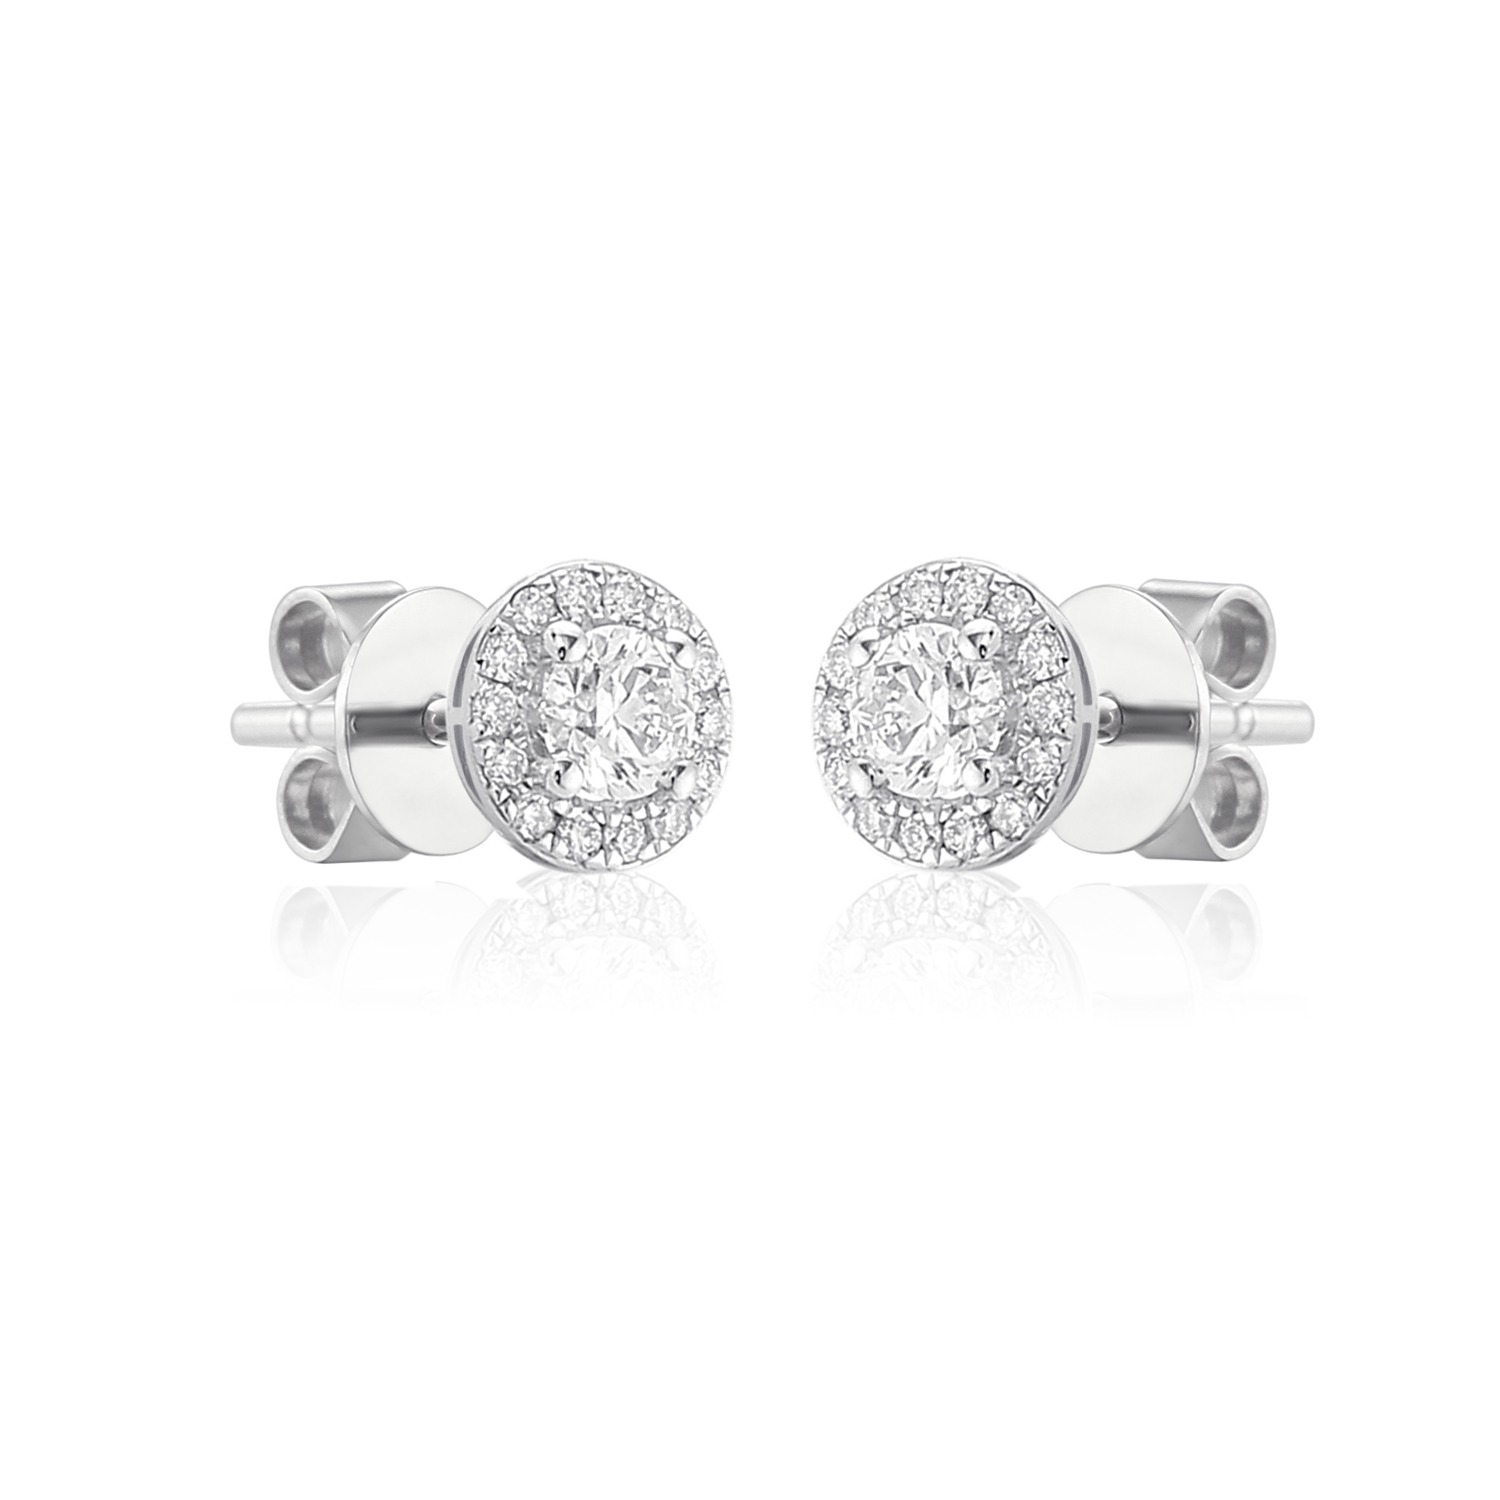 18ct white gold halo earstuds